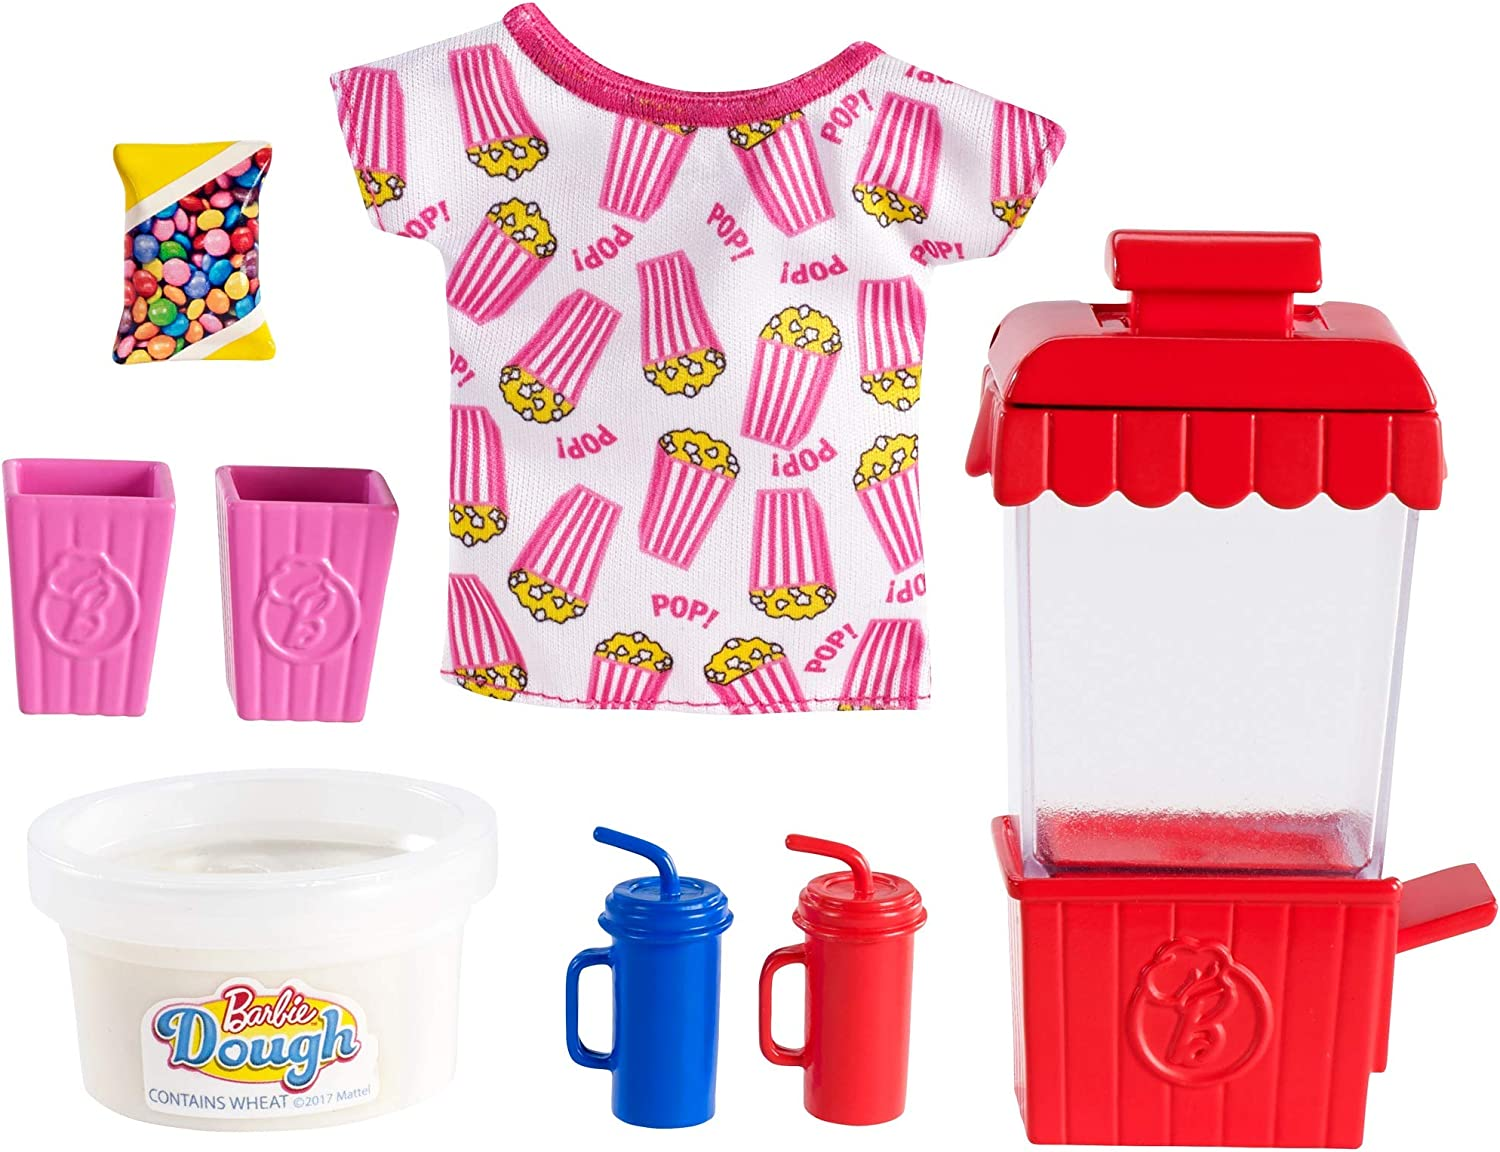 Barbie Cooking & Baking Accessory Pack with Popcorn-Themed Pieces, Including T-Shirt for Doll, Popcorn Machine Mold & Container of Molded Dough, Ages 4 Years Old & Up, Multi